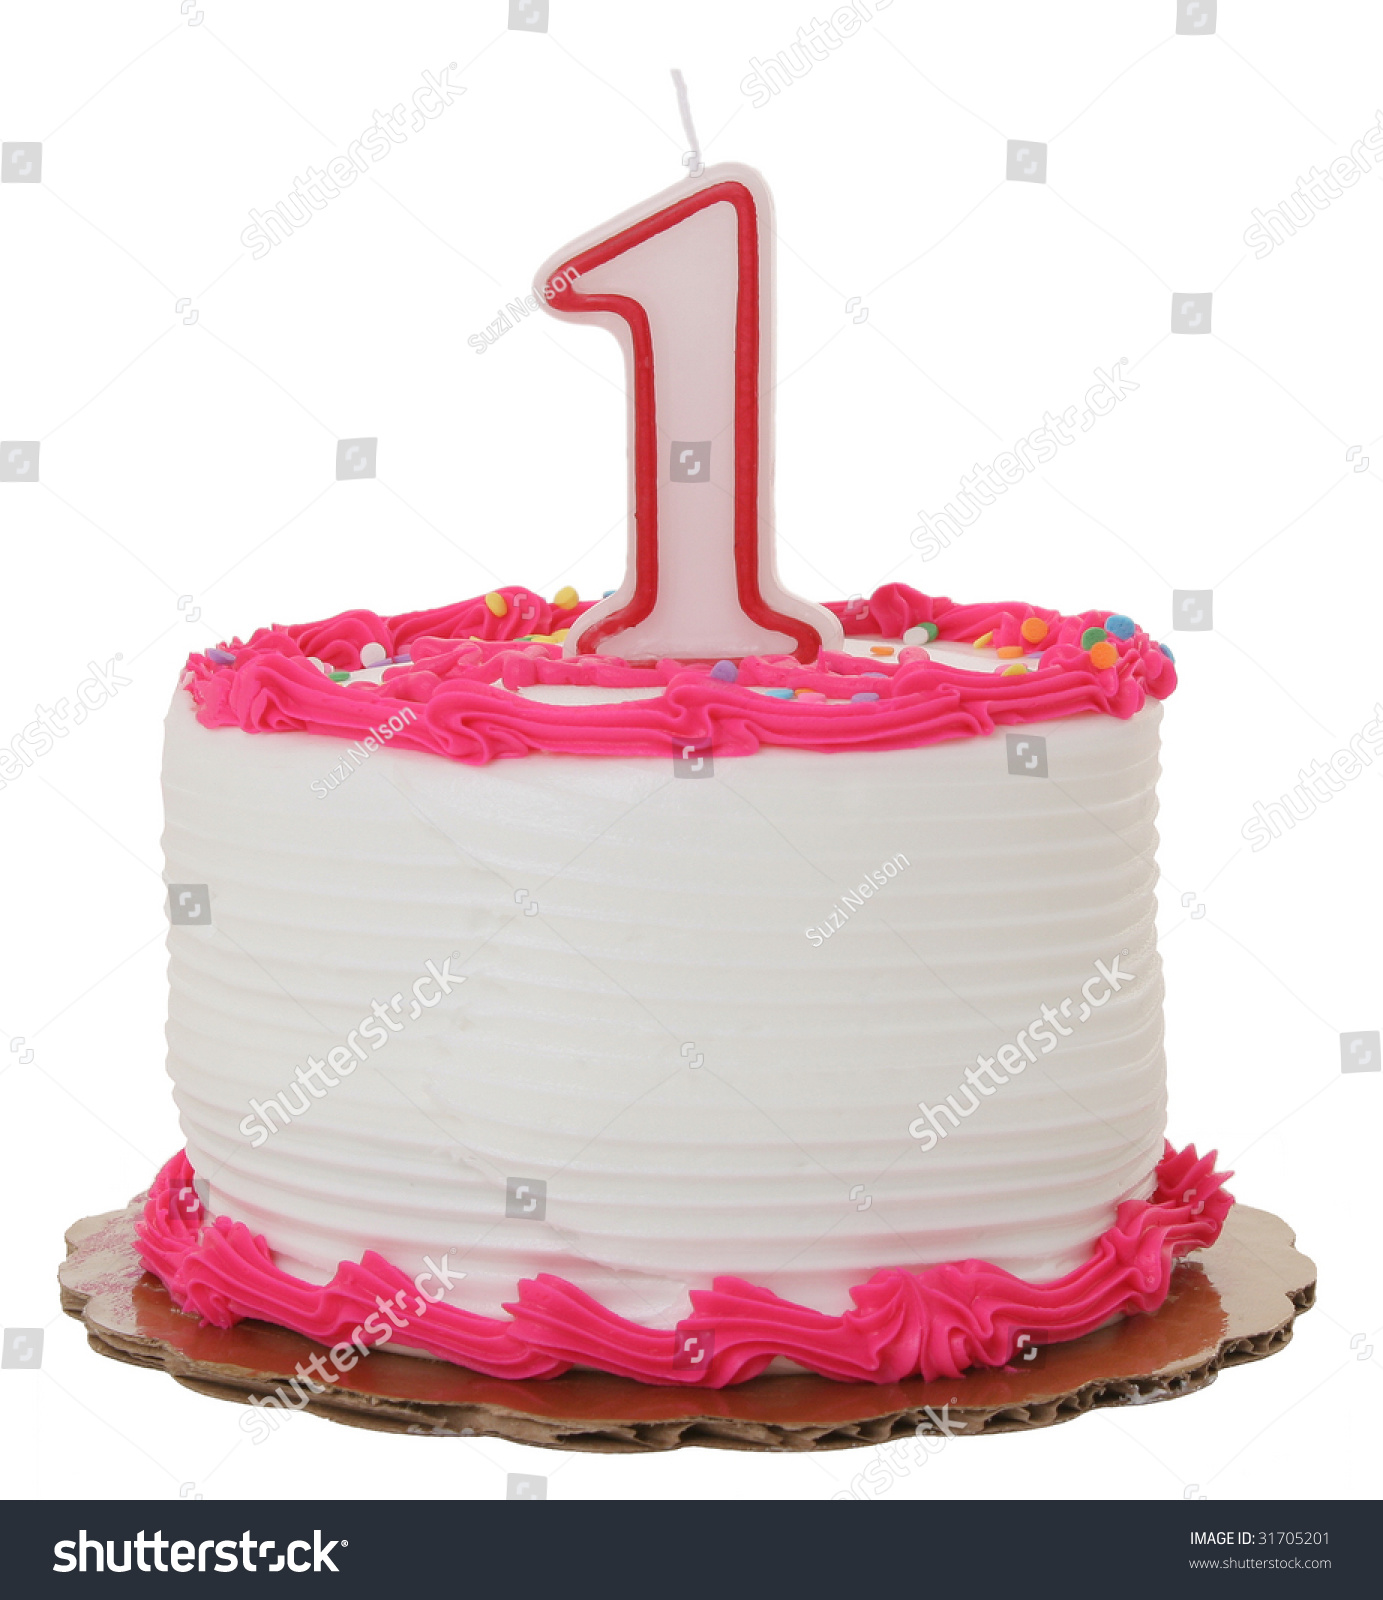 Pink Frosted 1st Year Birthday Cake Stock Photo Edit Now 31705201